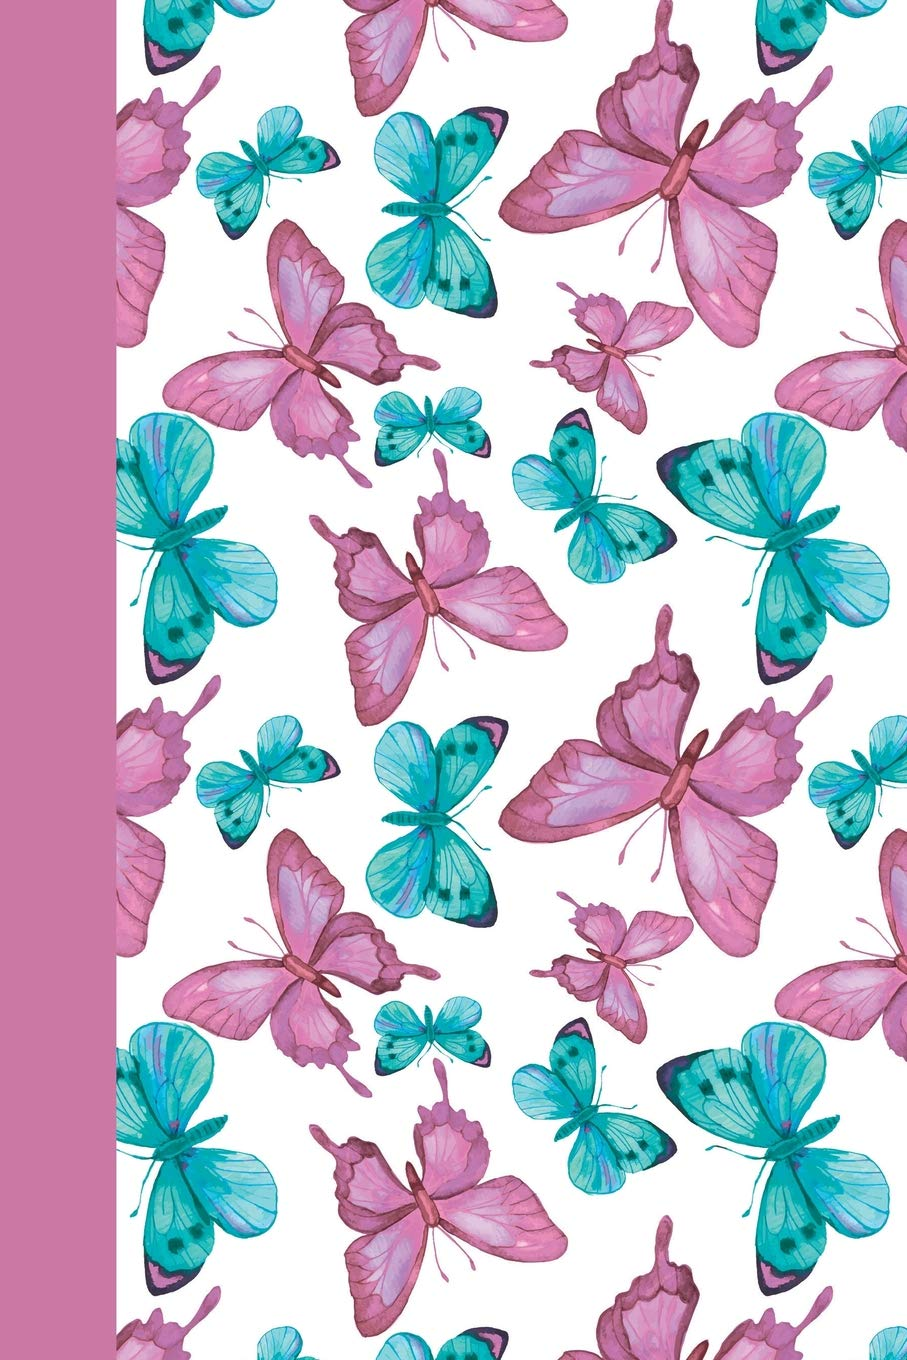 Sketchbook: Pink and Blue Butterflies 6x9 - BLANK JOURNAL WITH NO LINES - Journal notebook with unlined pages for drawing and writing on blank paper (Birds & Buttterflies Sketchbook Series) Paperback – March 5, 2017 Premise Content 154405467X Journalin